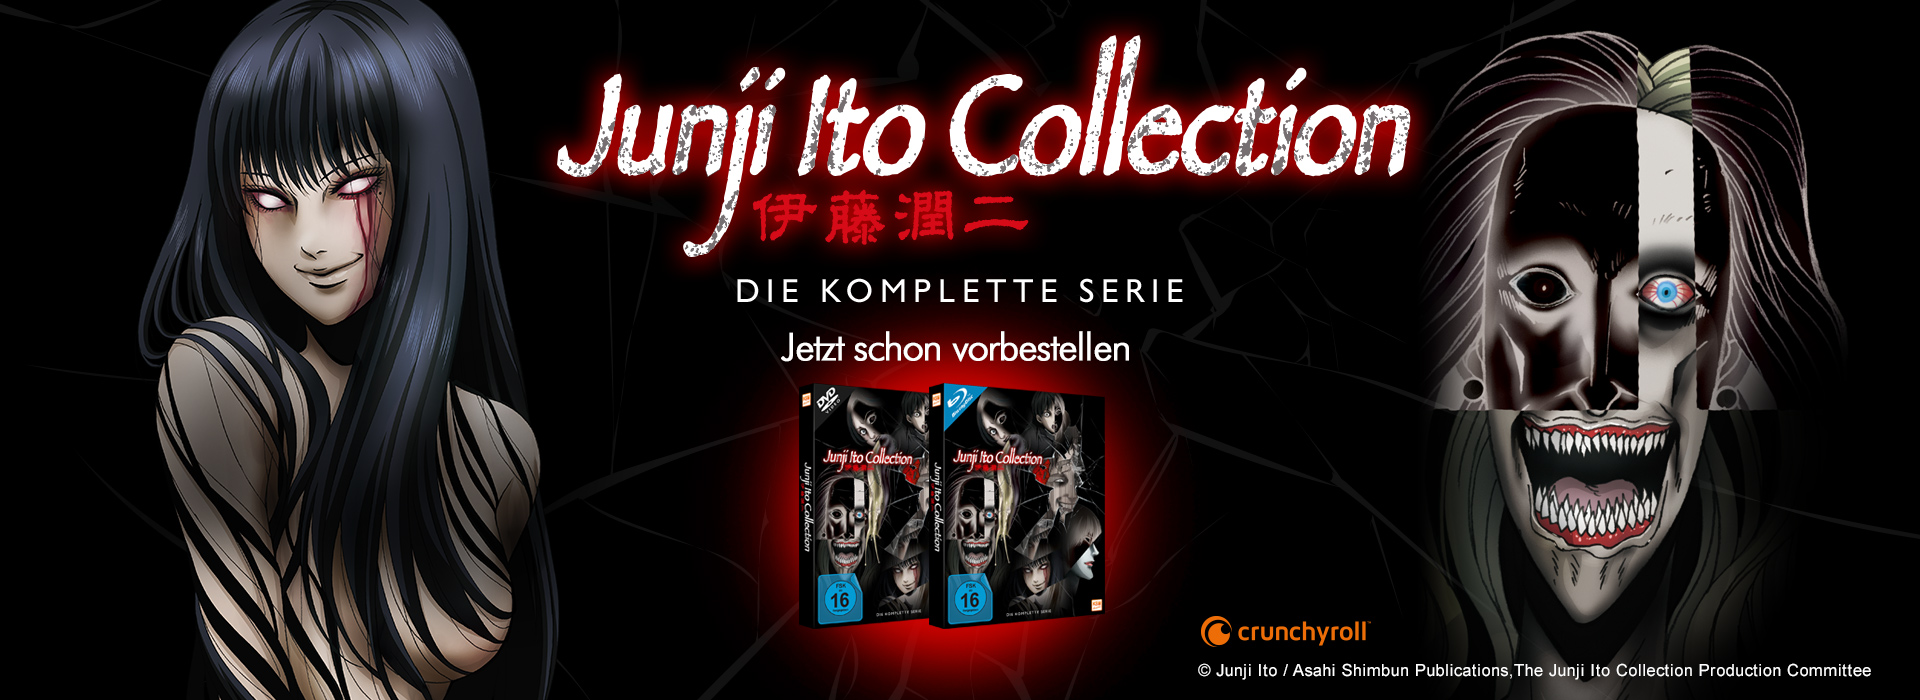 Teaser Junji Ito Collection